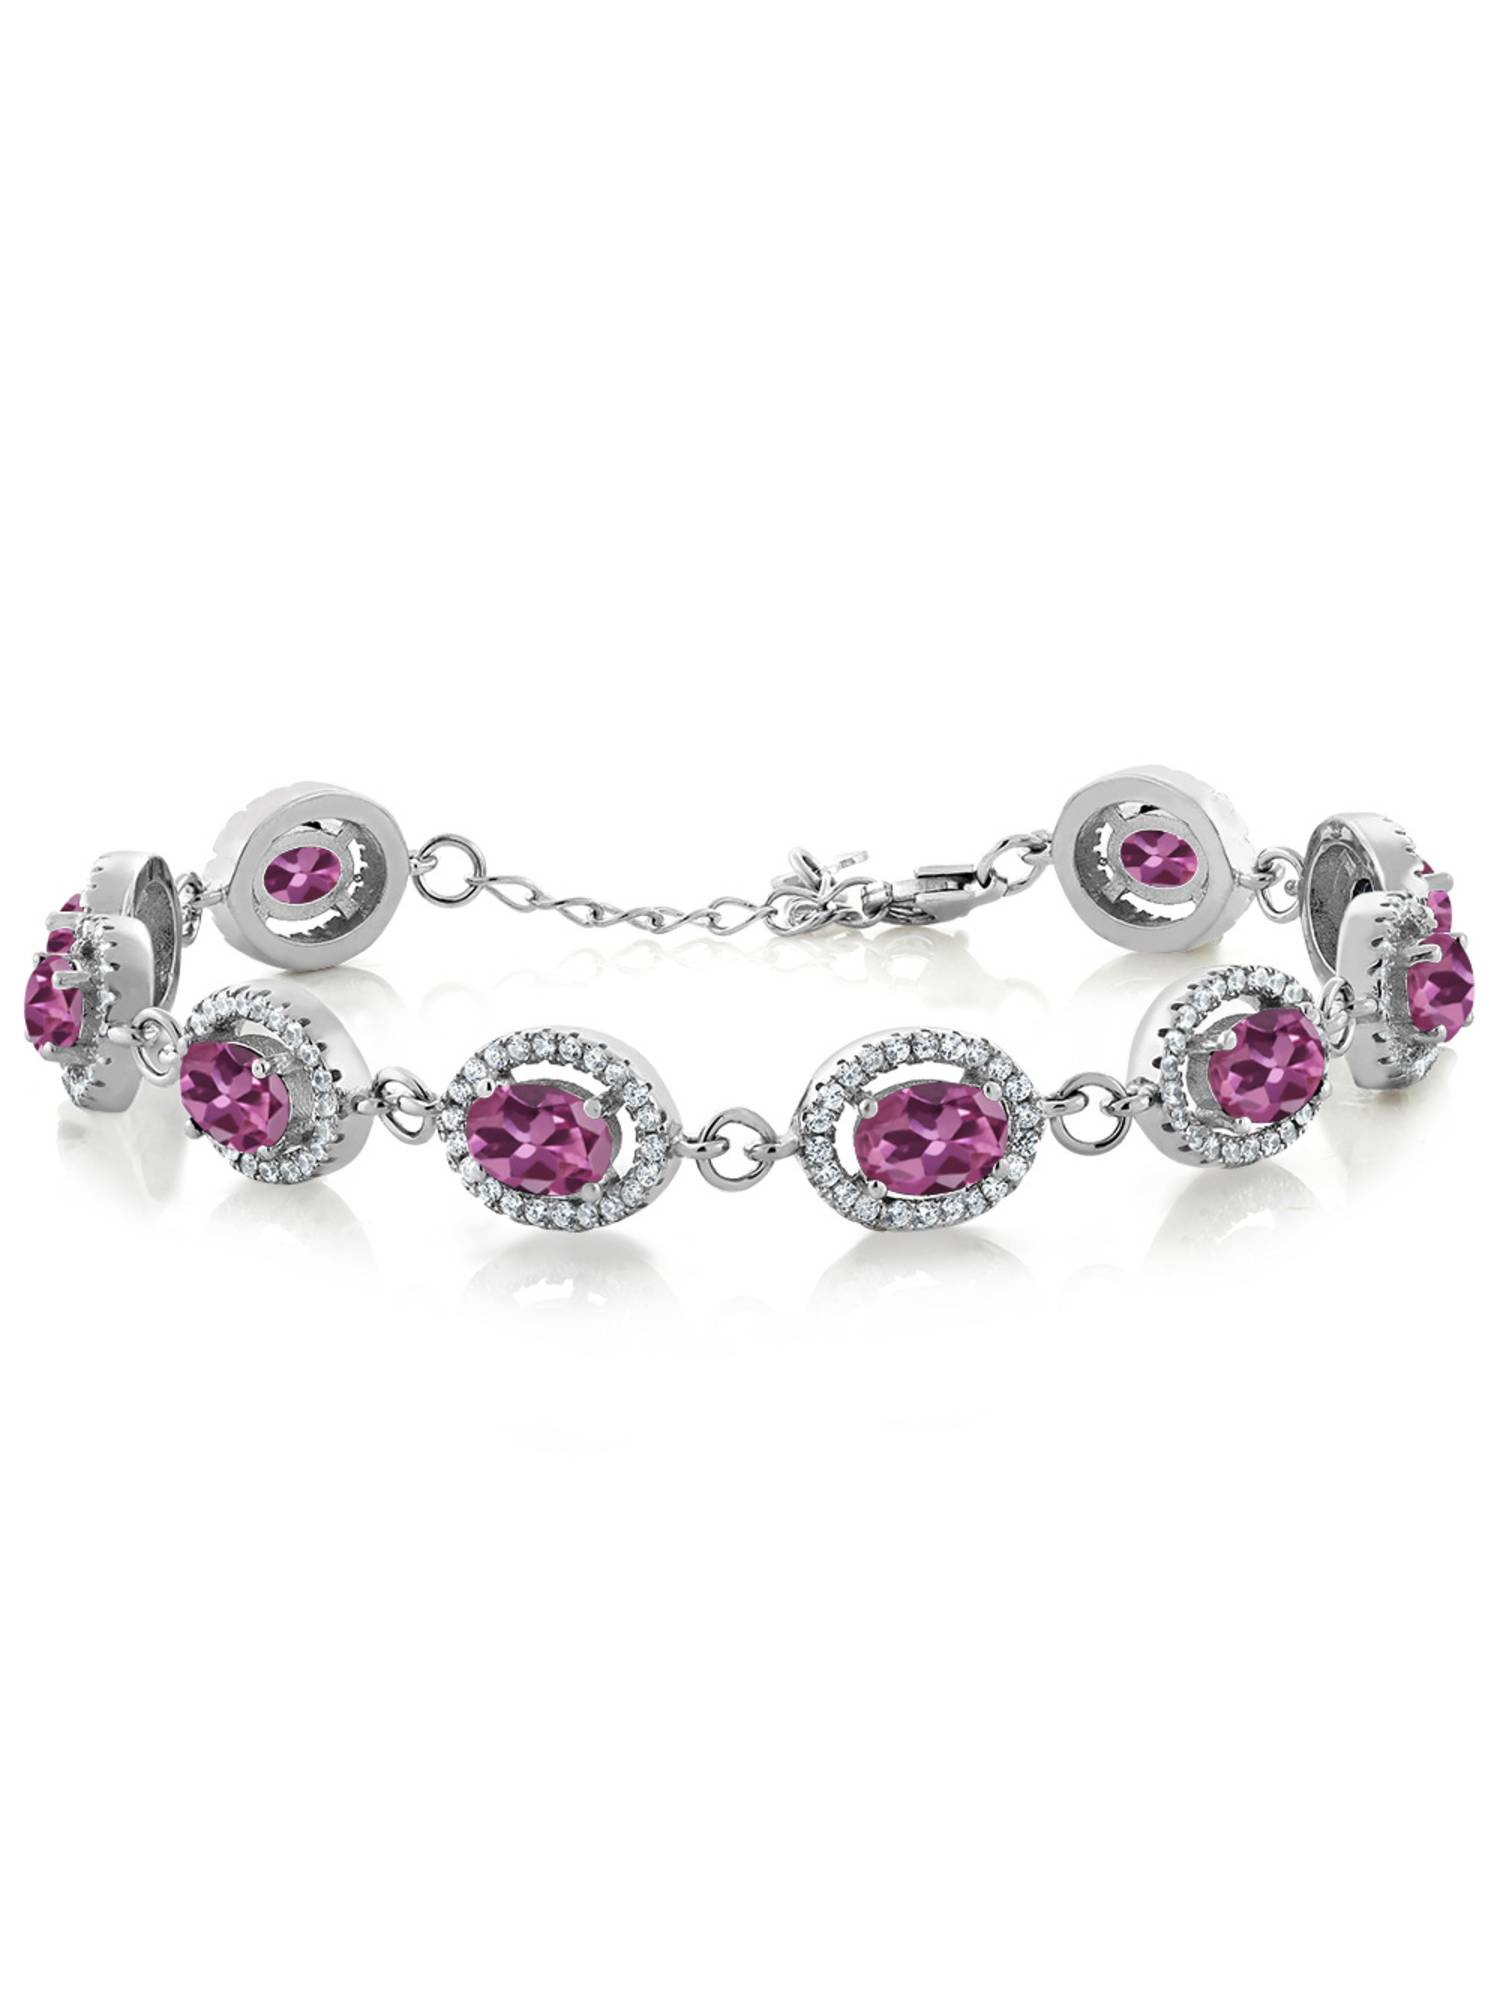 9.88 Ct Oval Pink Tourmaline AA 925 Sterling Silver Bracelet by